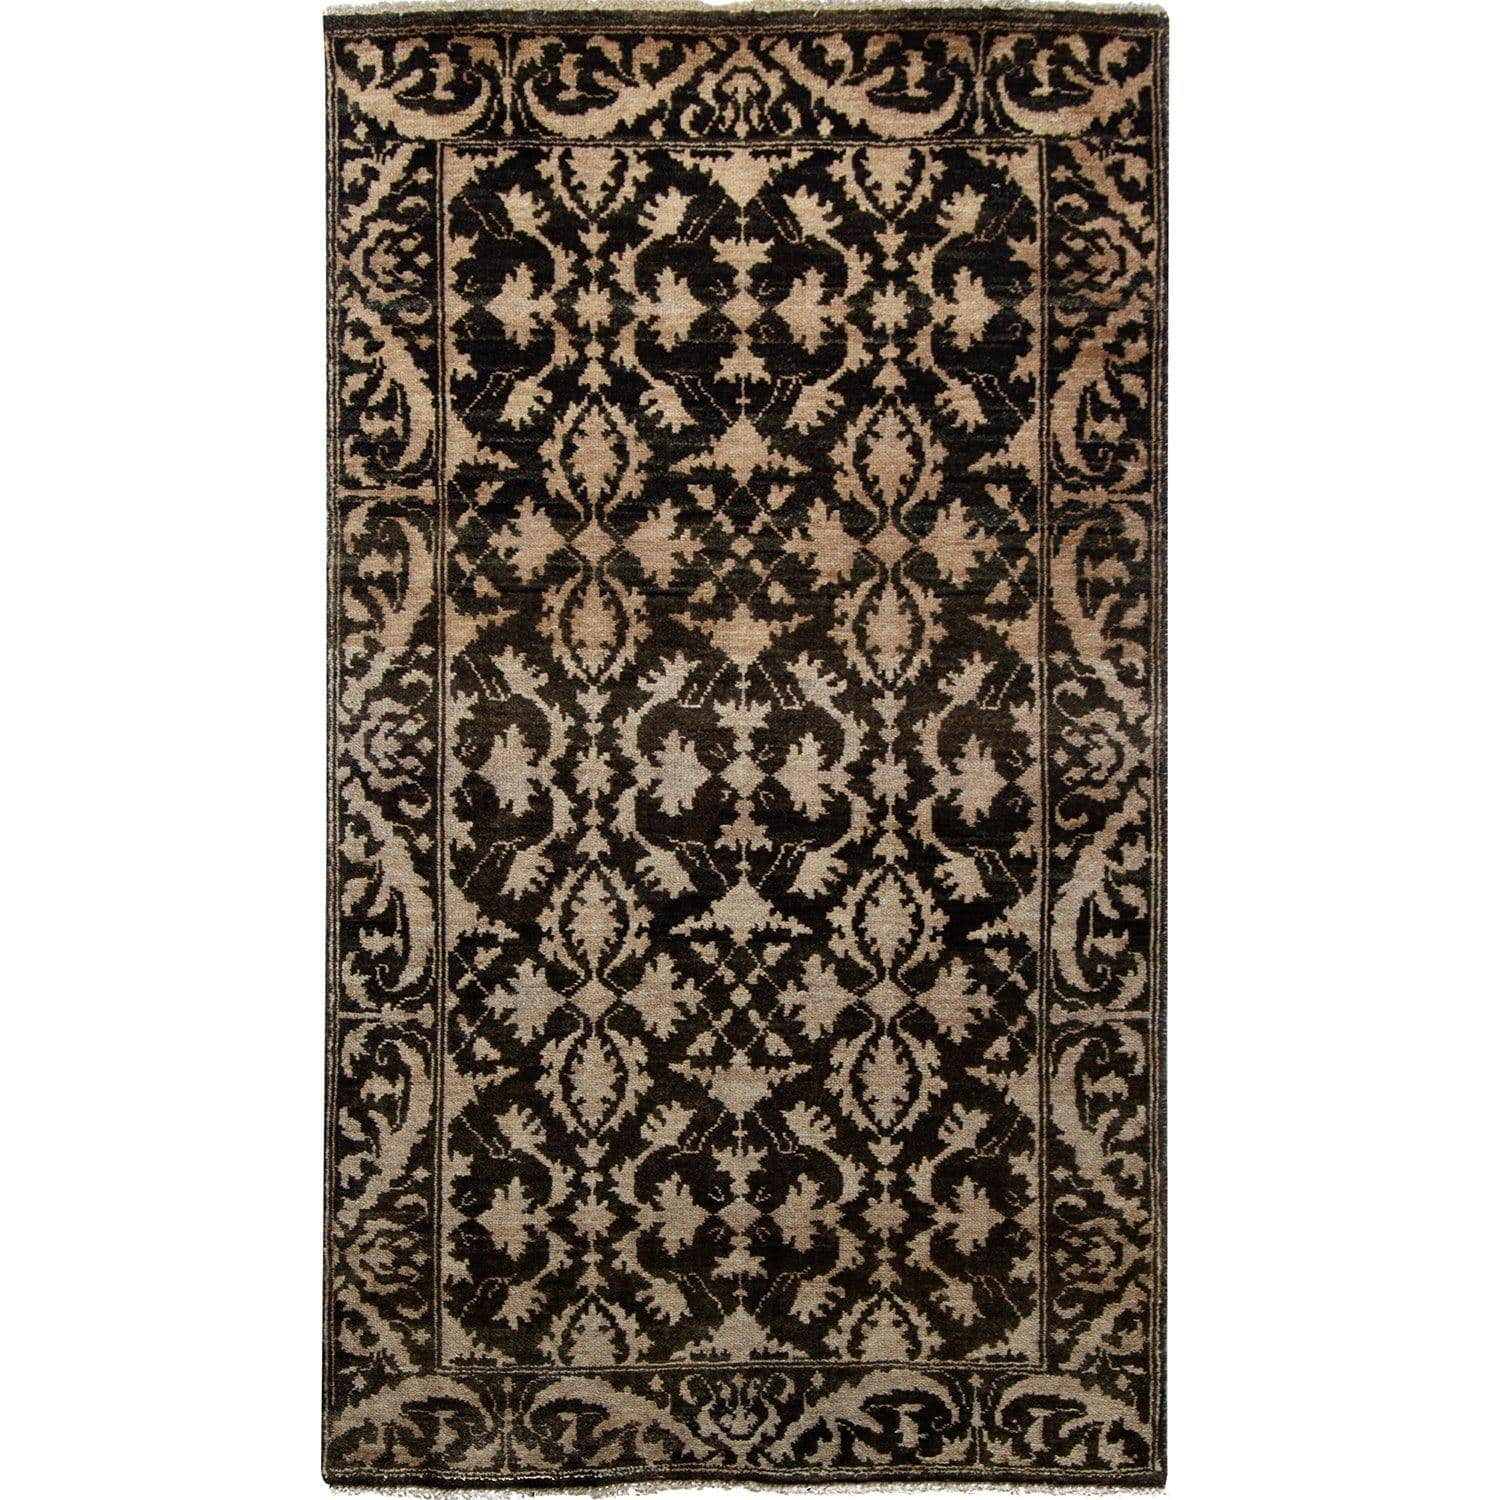 Fine Contemporary NZ Wool Hand-knotted Small Rug 92cm x 152cm Persian-Rug | House-of-Haghi | NewMarket | Auckland | NZ | Handmade Persian Rugs | Hand Knotted Persian Rugs